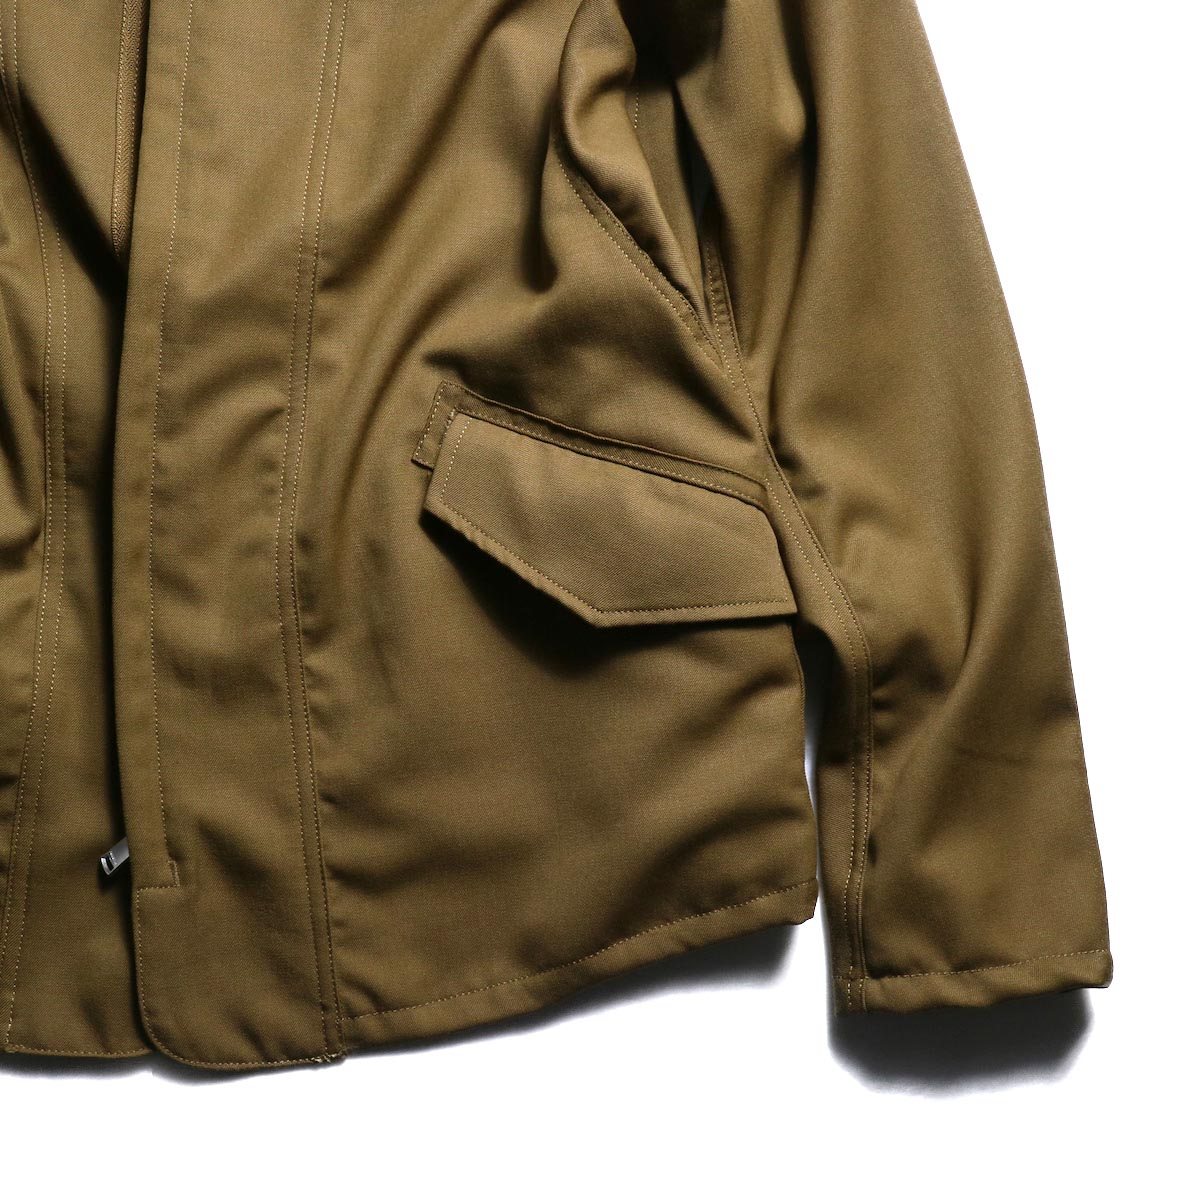 nonnative / SOLDIER JACKET WOOL TWILL -Beige 裾